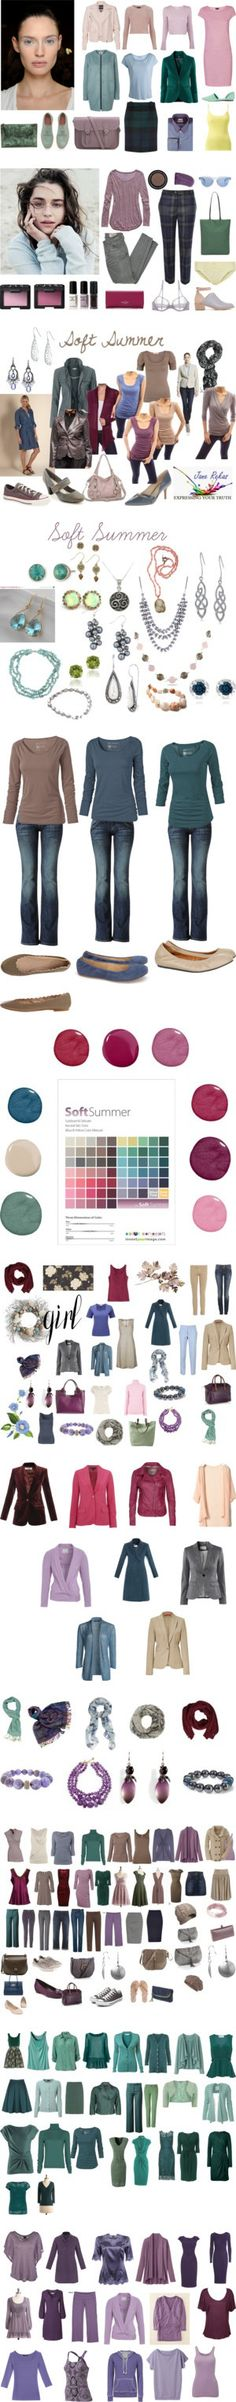 Soft Summer personal coloring, vol. III by in-vero-pulcritudo on Polyvore featuring Veda, A.L.C., Topshop, Paul Smith, Chicnova Fashion, Vero Moda, Pieces, ONLY, Grenson and Jenni Kayne